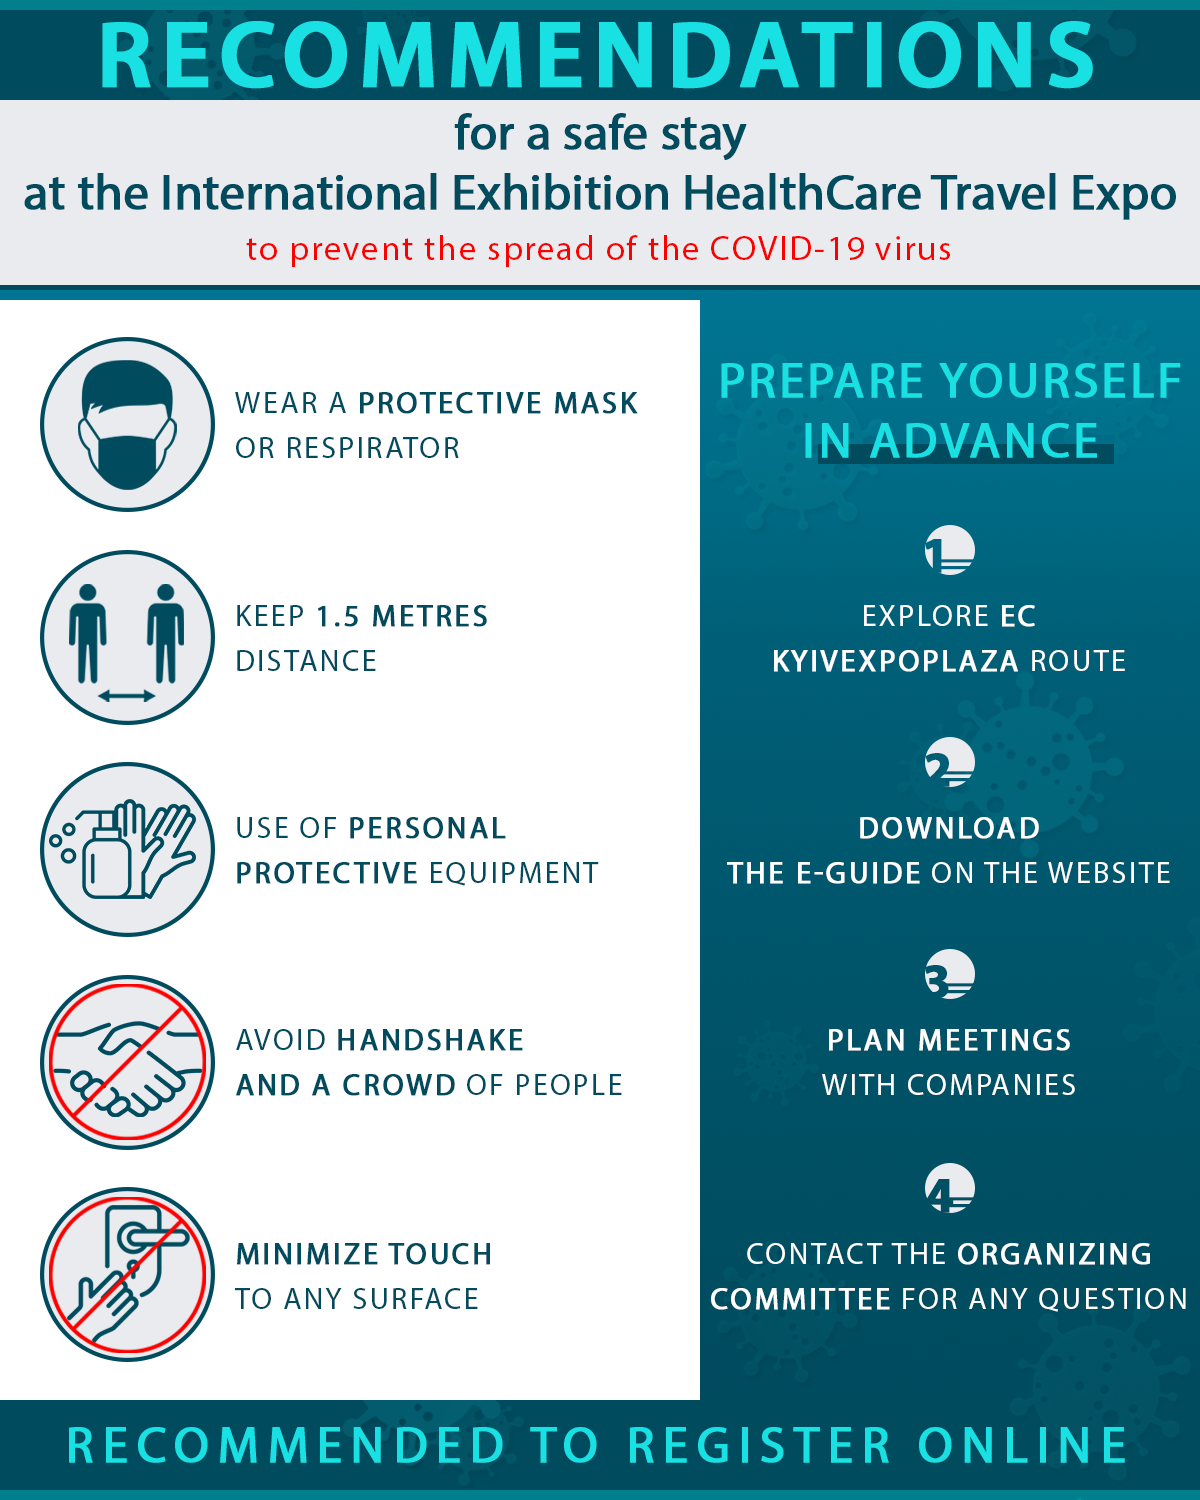 Recommended Rules for Safe Stay at the Exhibition